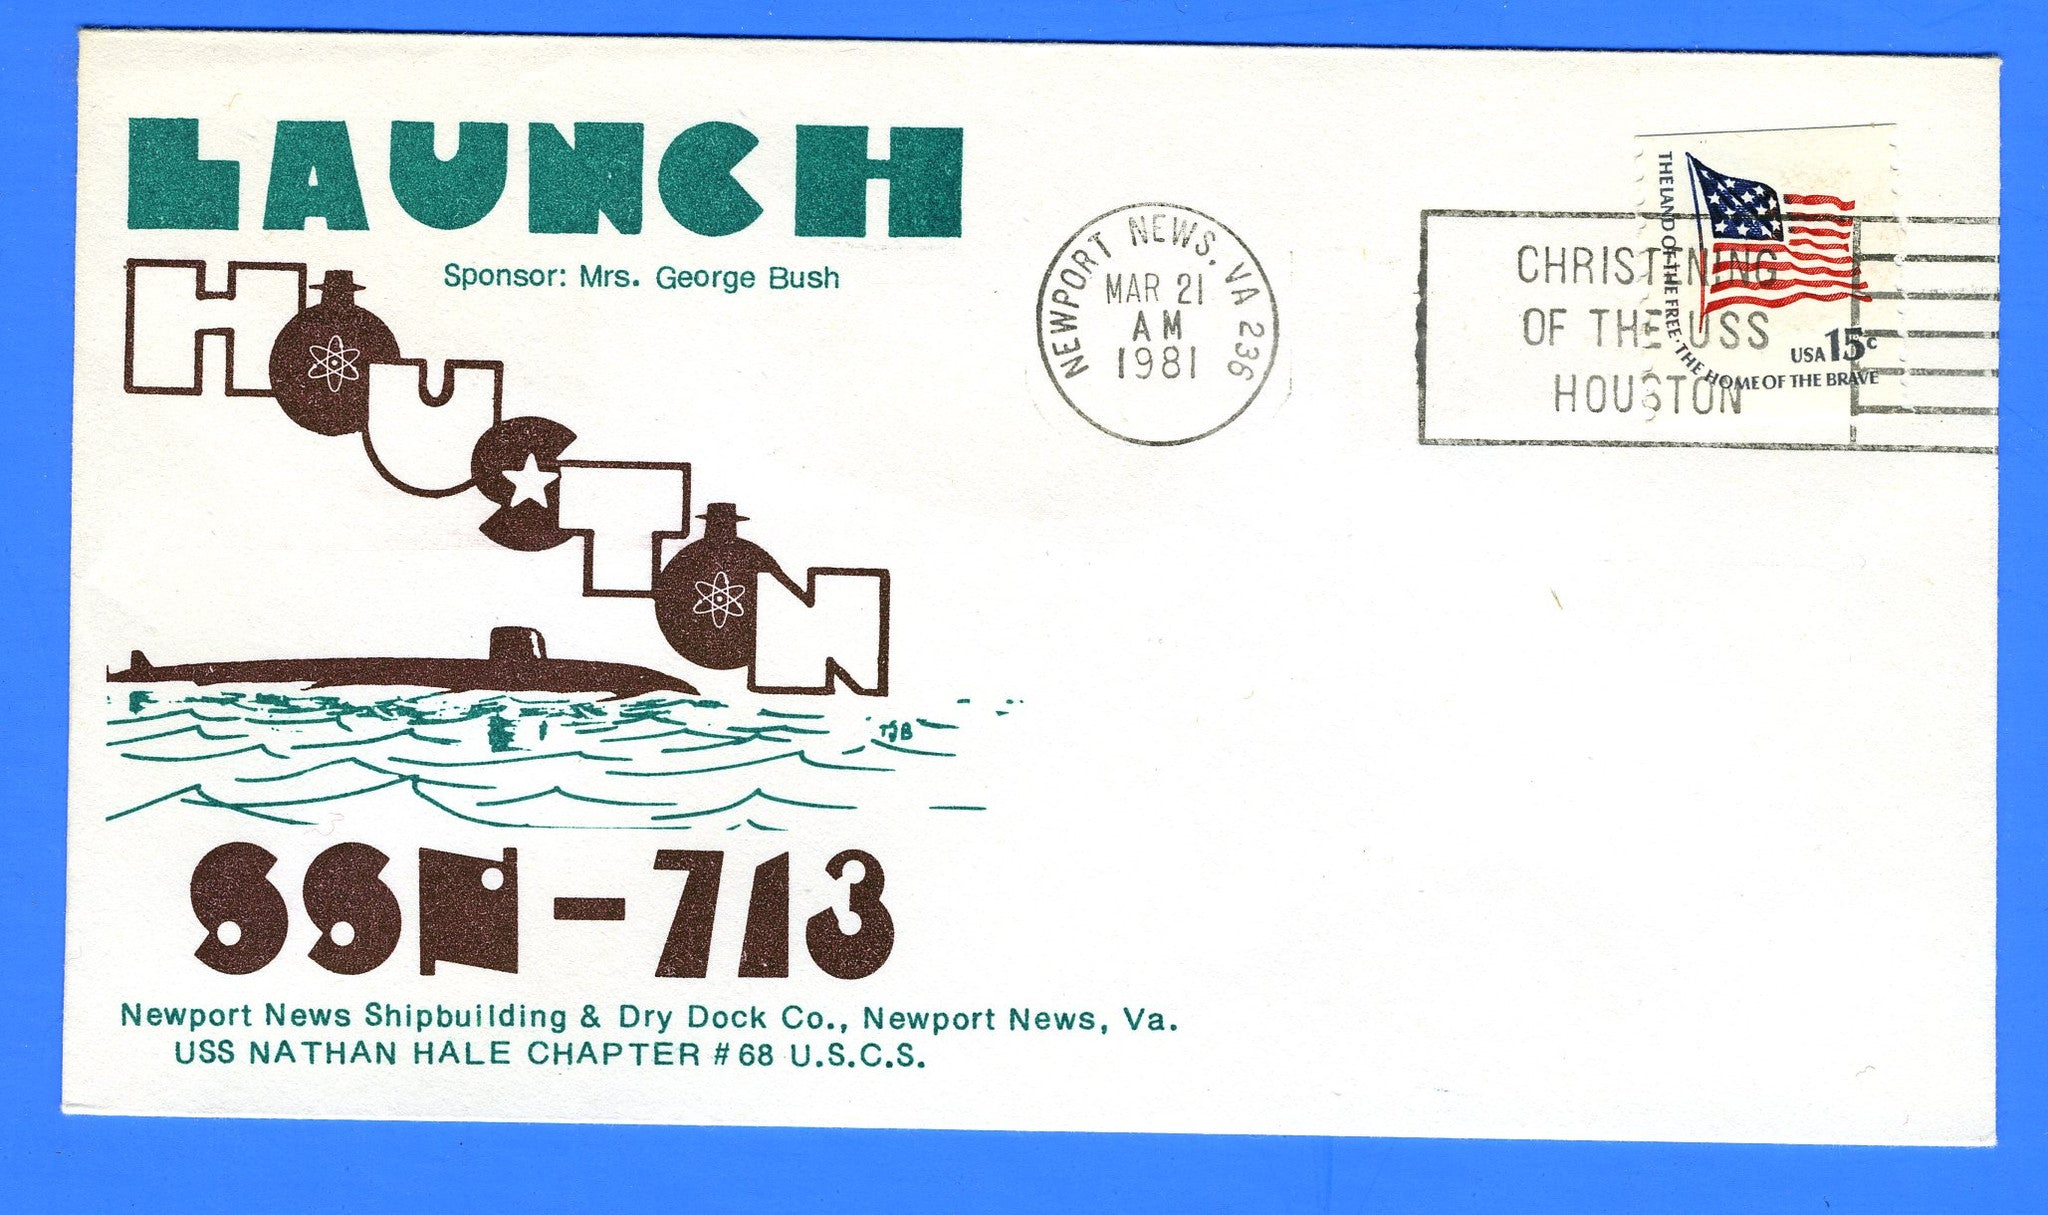 USS Houston SSN-713 Launched March 21, 1981 - Cachet by USS Nathan Hale Chapter No. 68, USCS